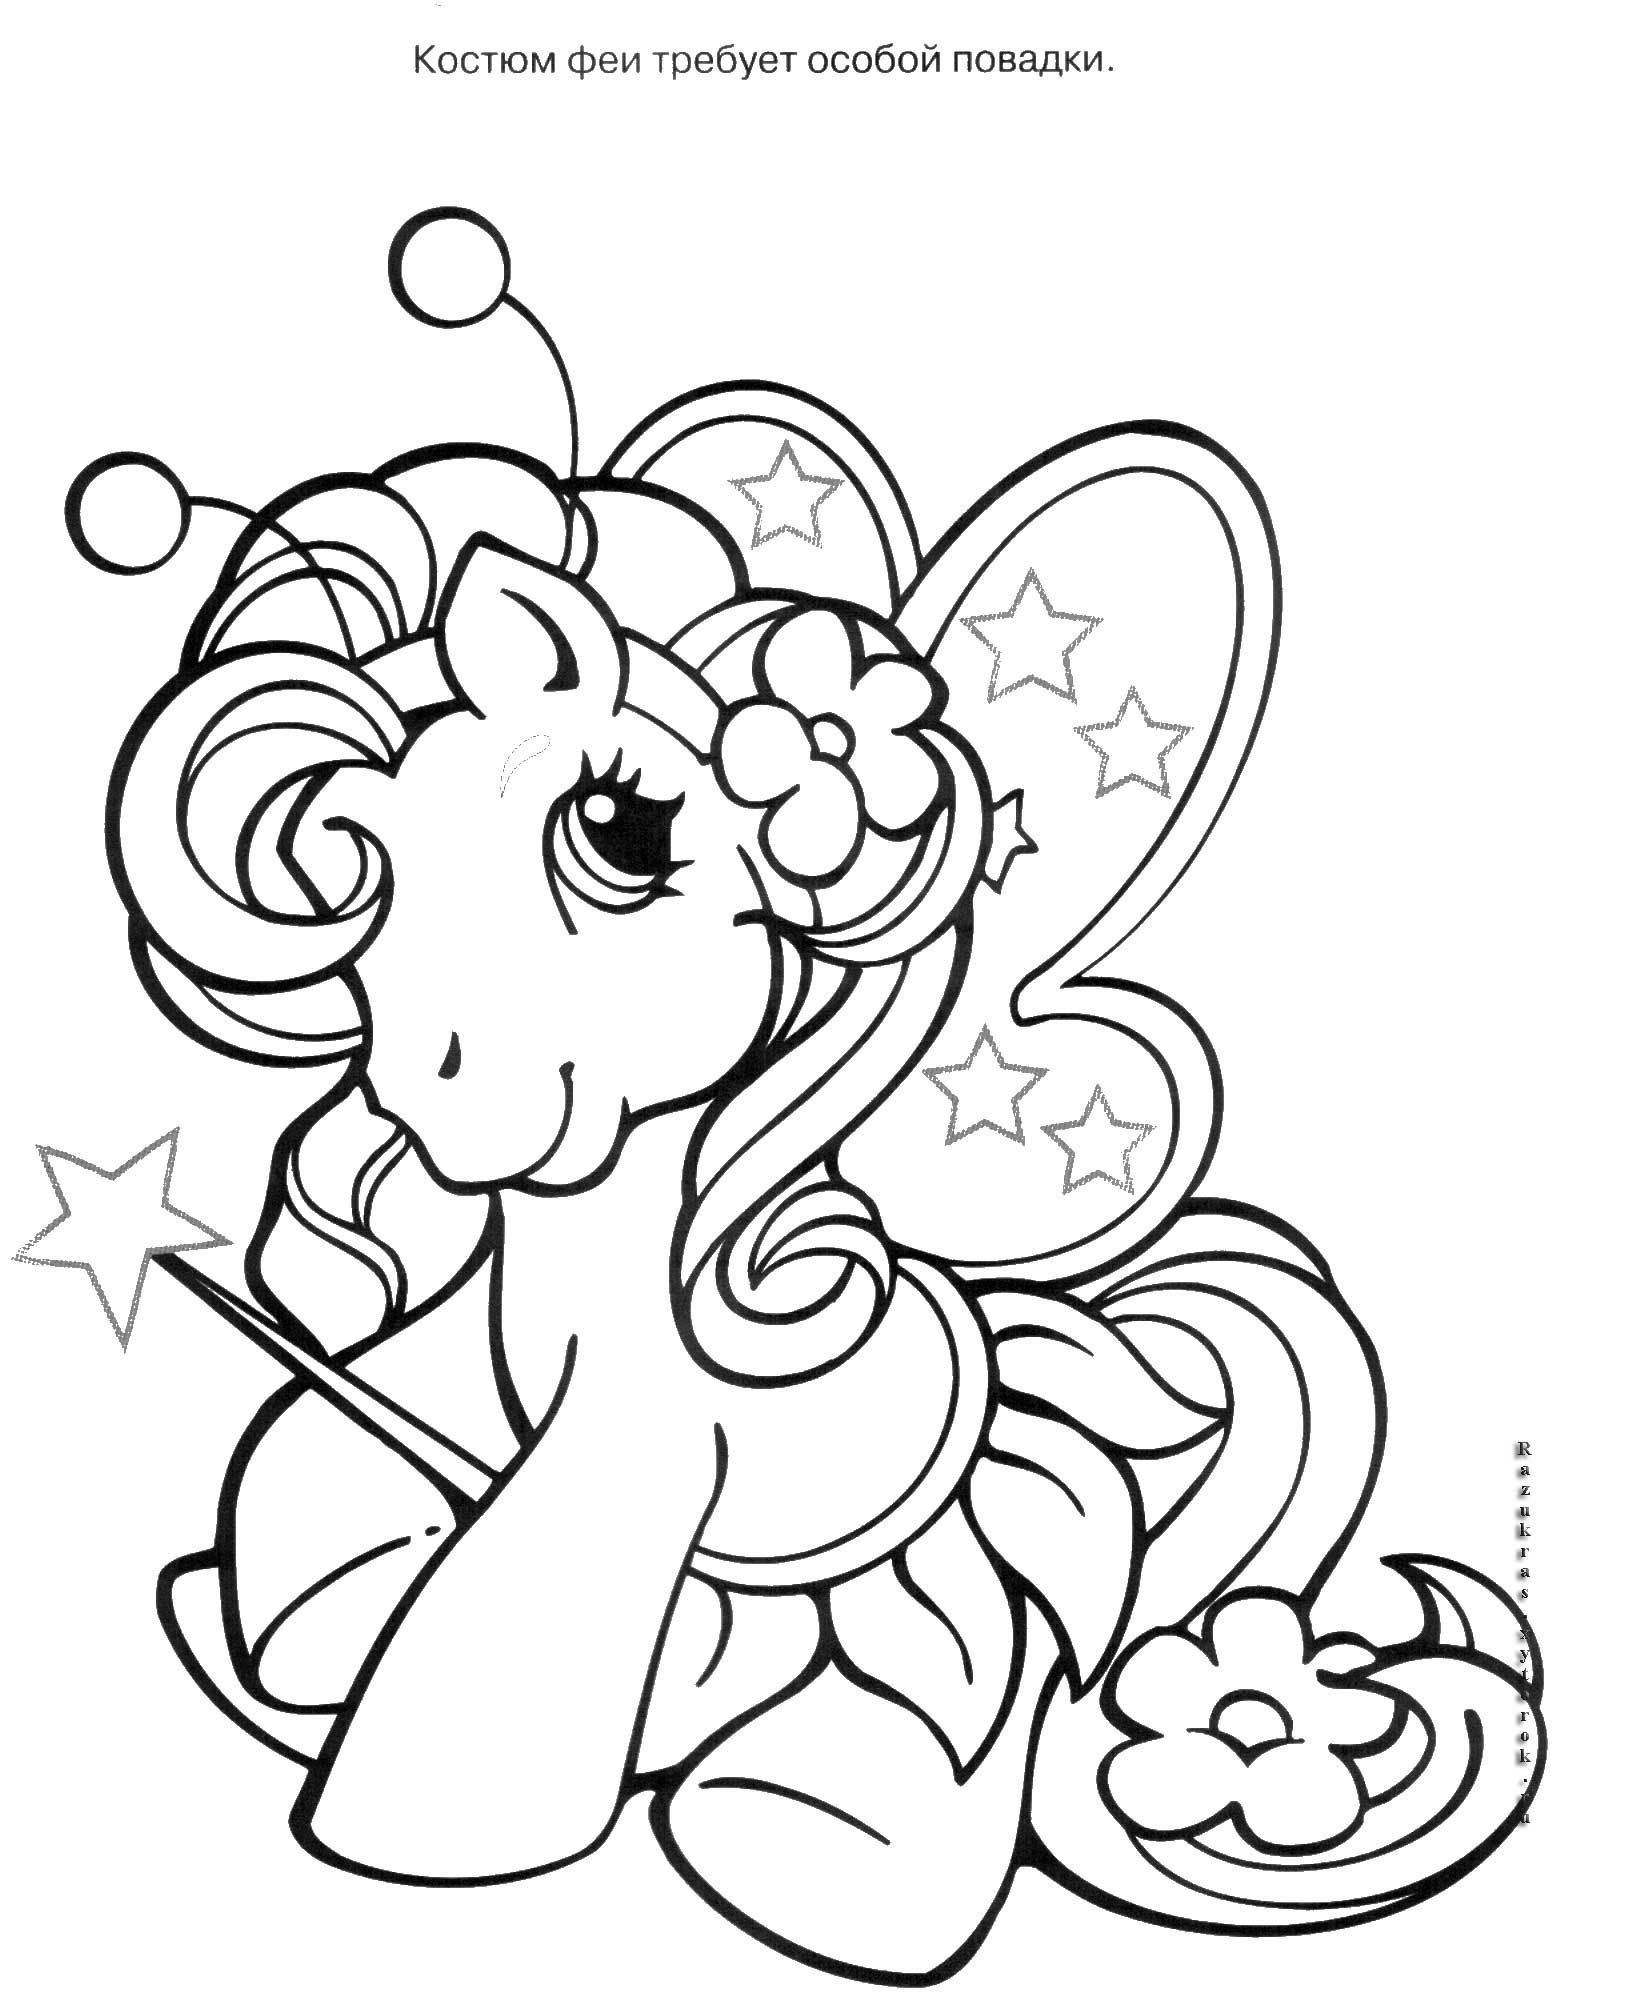 Ausmalbilder Kostenlos Drucken My Little Pony : Mon Petit Poney My Little Pony Para Colorir Pinterest